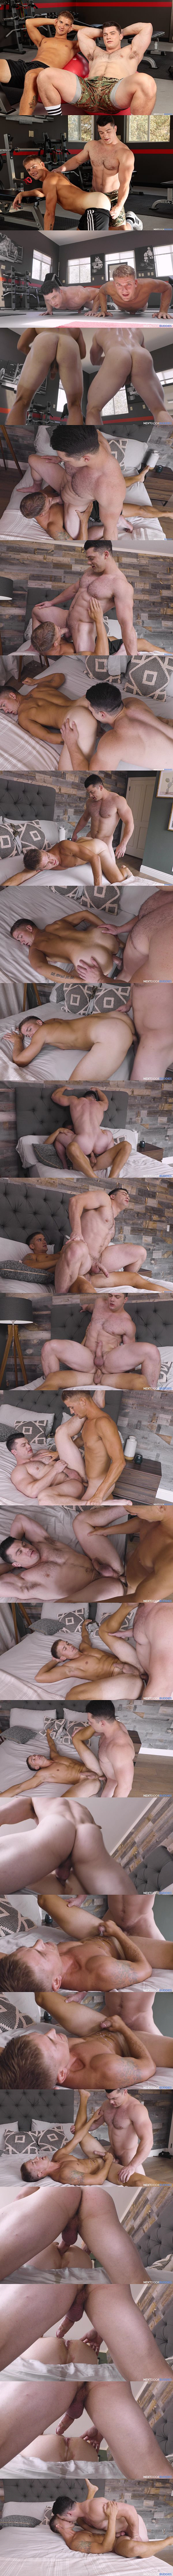 Fit muscle jock Brandon Anderson and Collin Simpson flip fuck raw before Collin fucks a big juicy load out of Brandon and creampies him In Collin's Muscle Study at Nextdoorbuddies 01